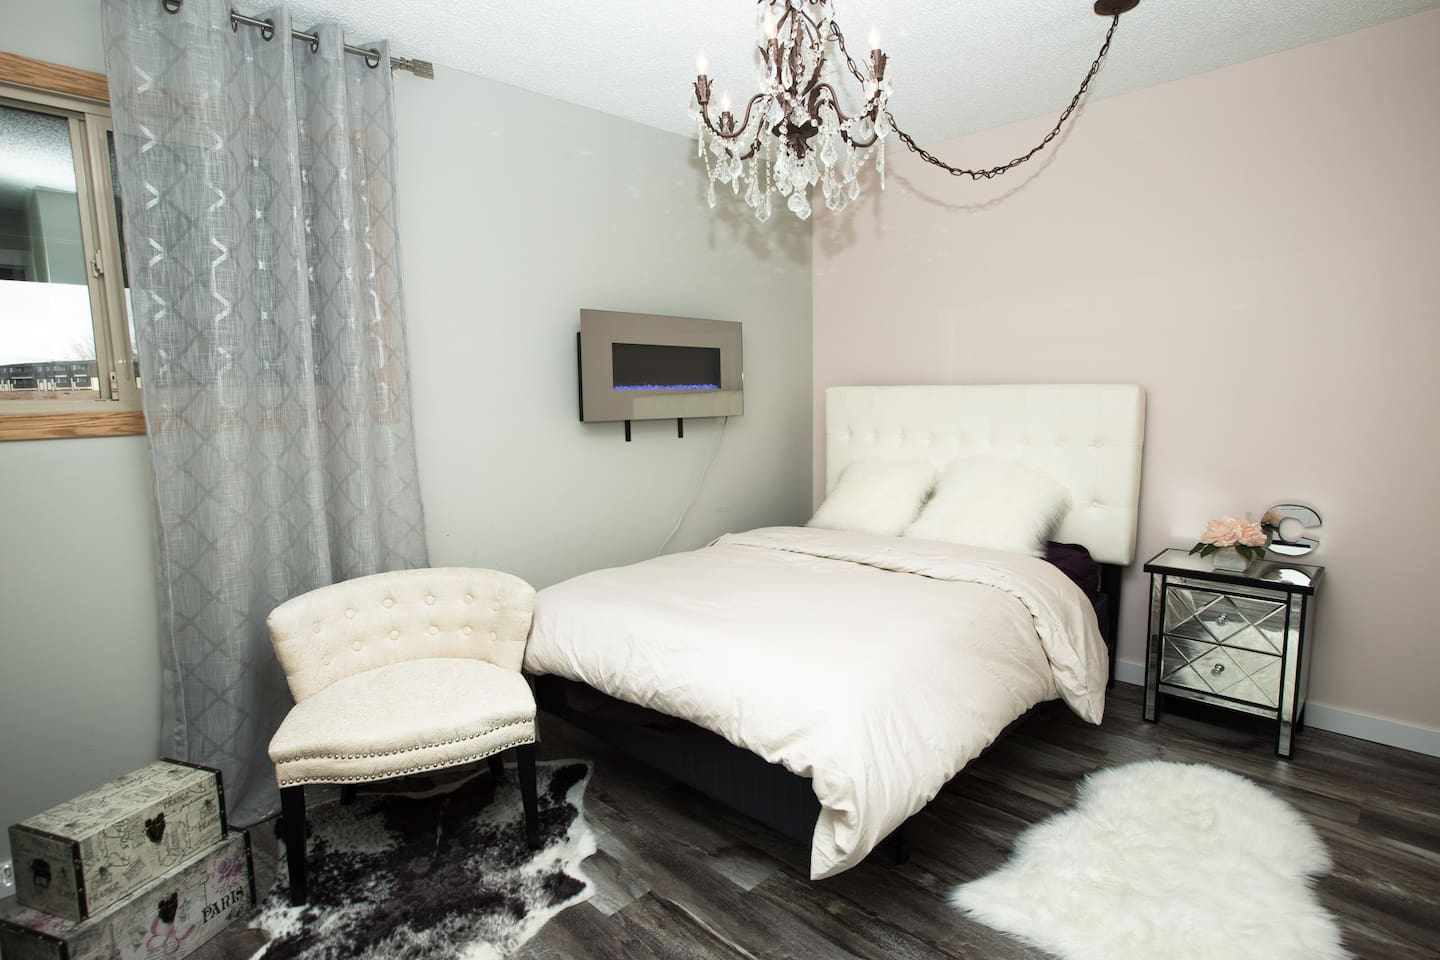 Very cozy mattress and orbus form pillows. Nothing like being in bed by the fireplace. ;)